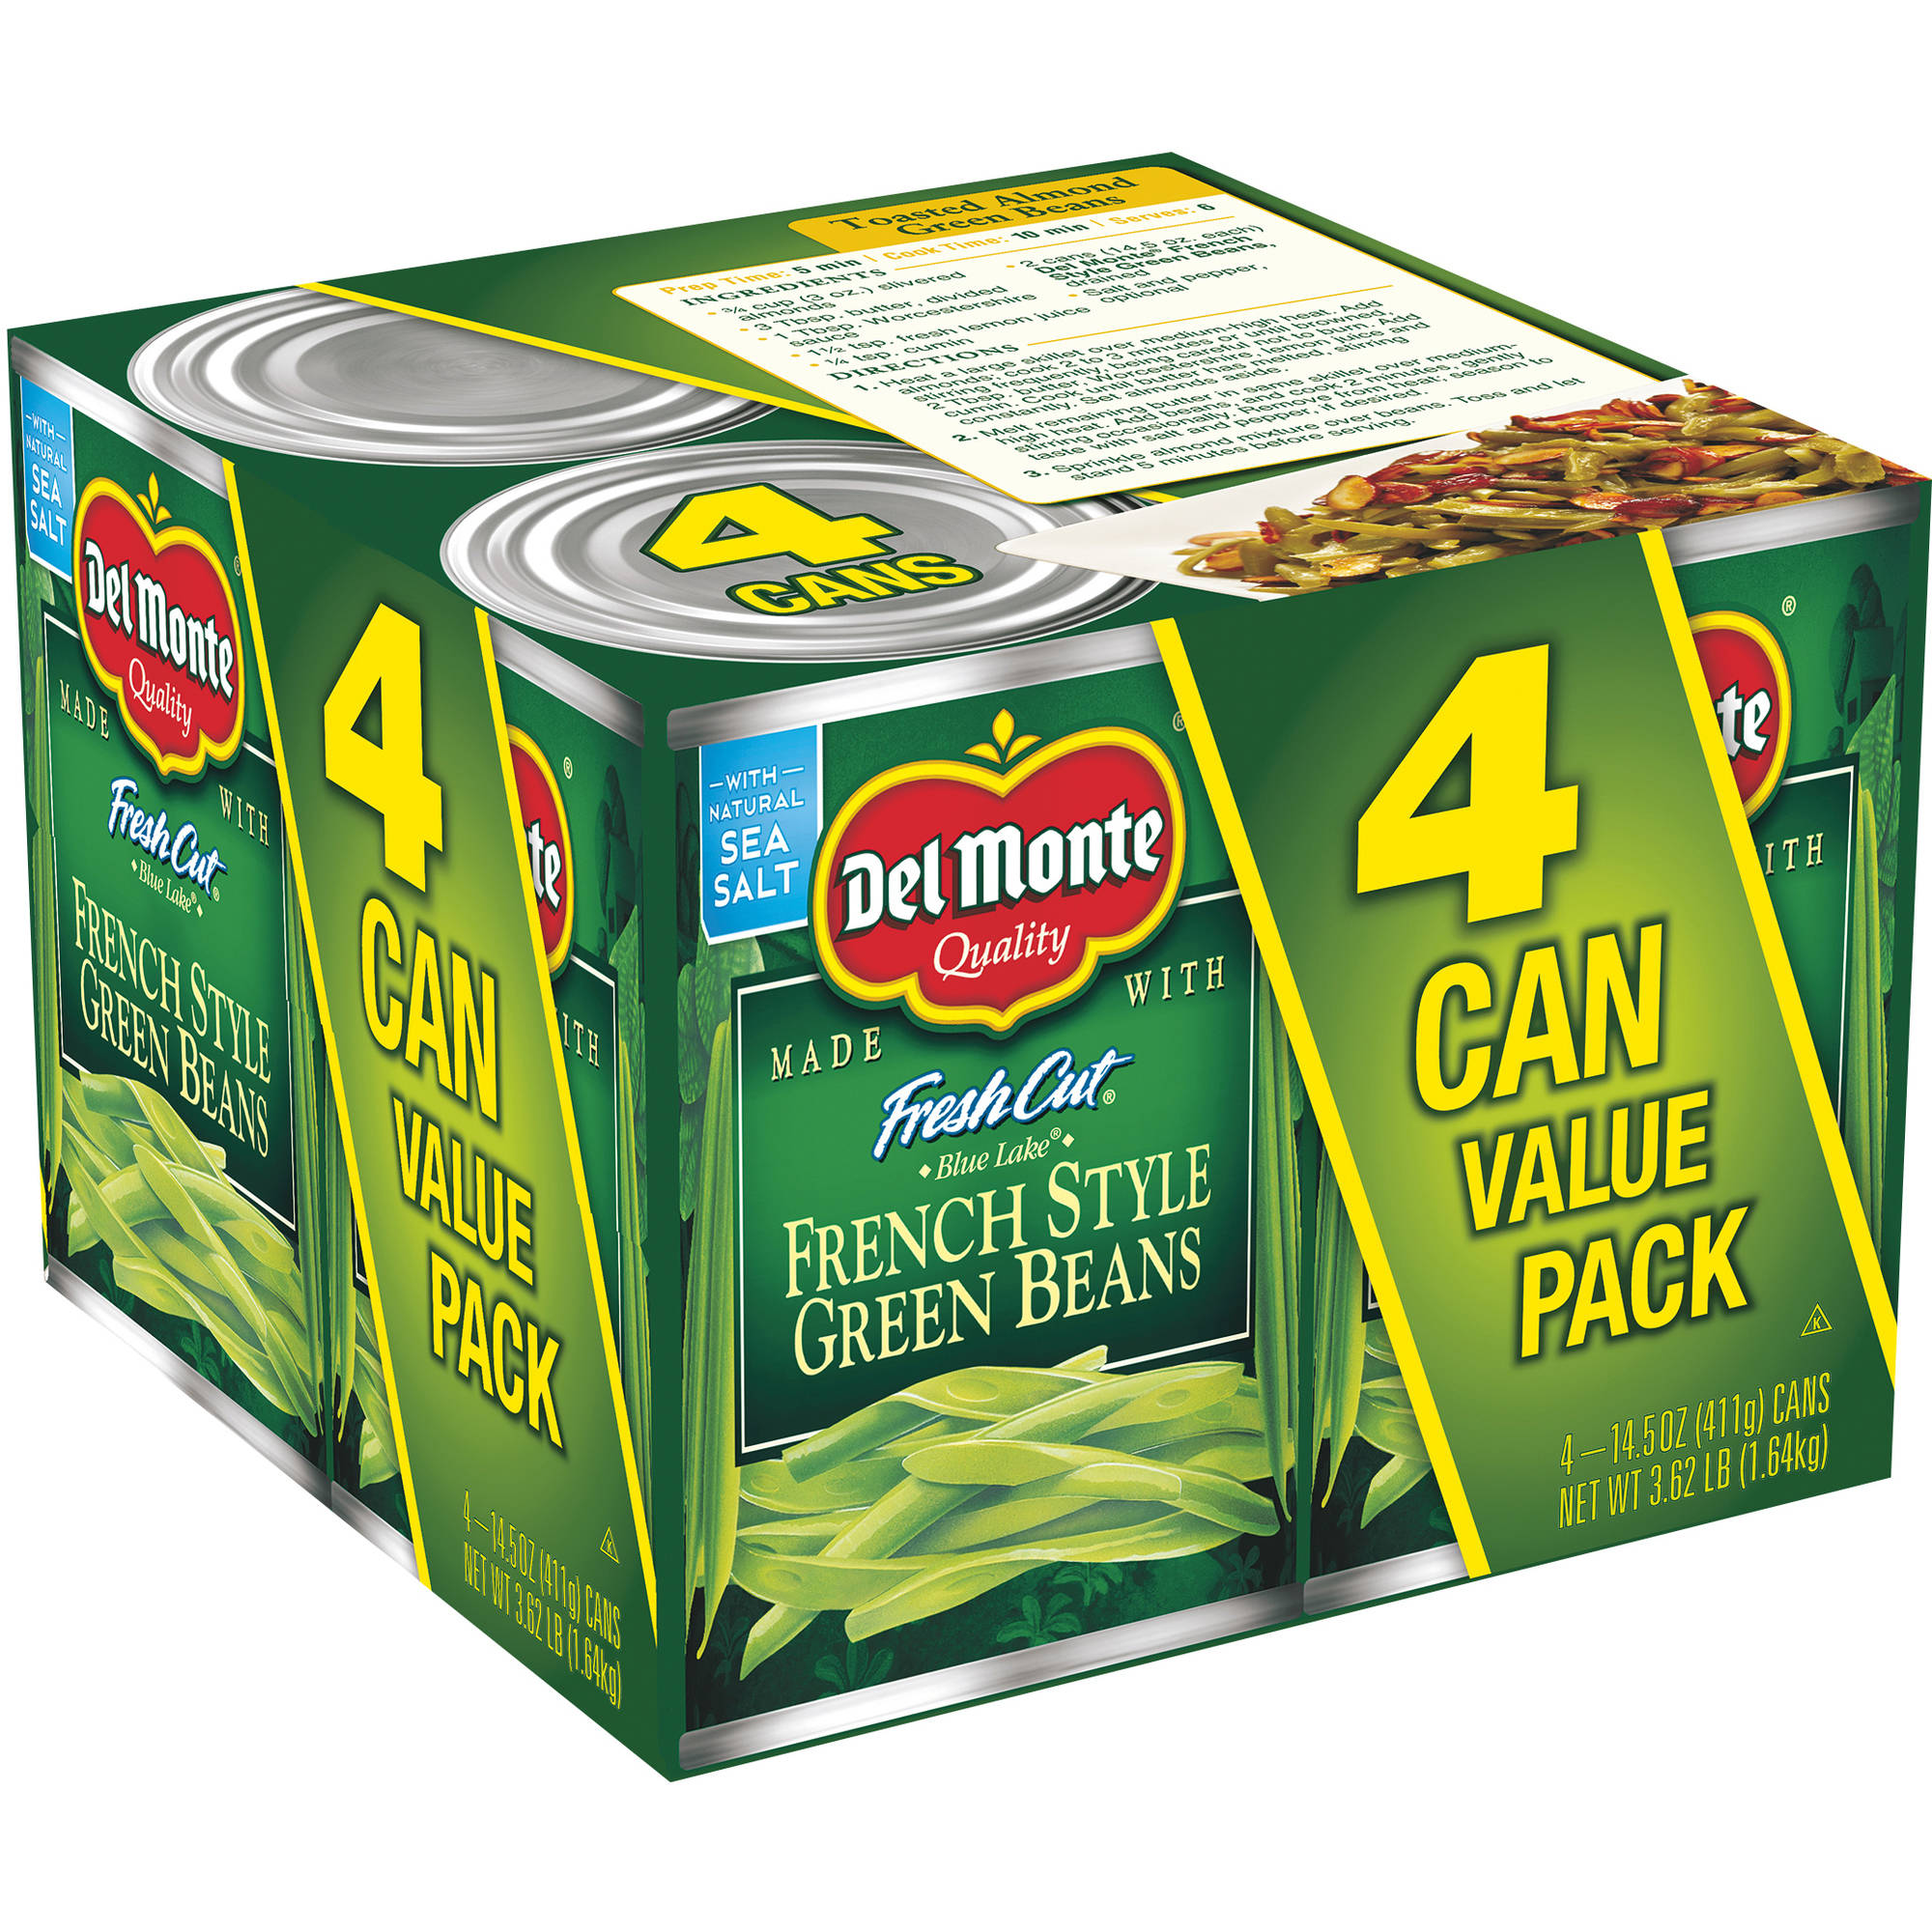 Del Monte Fresh Cut Blue Lake French Style Green Beans, 14.5 oz, 4 count